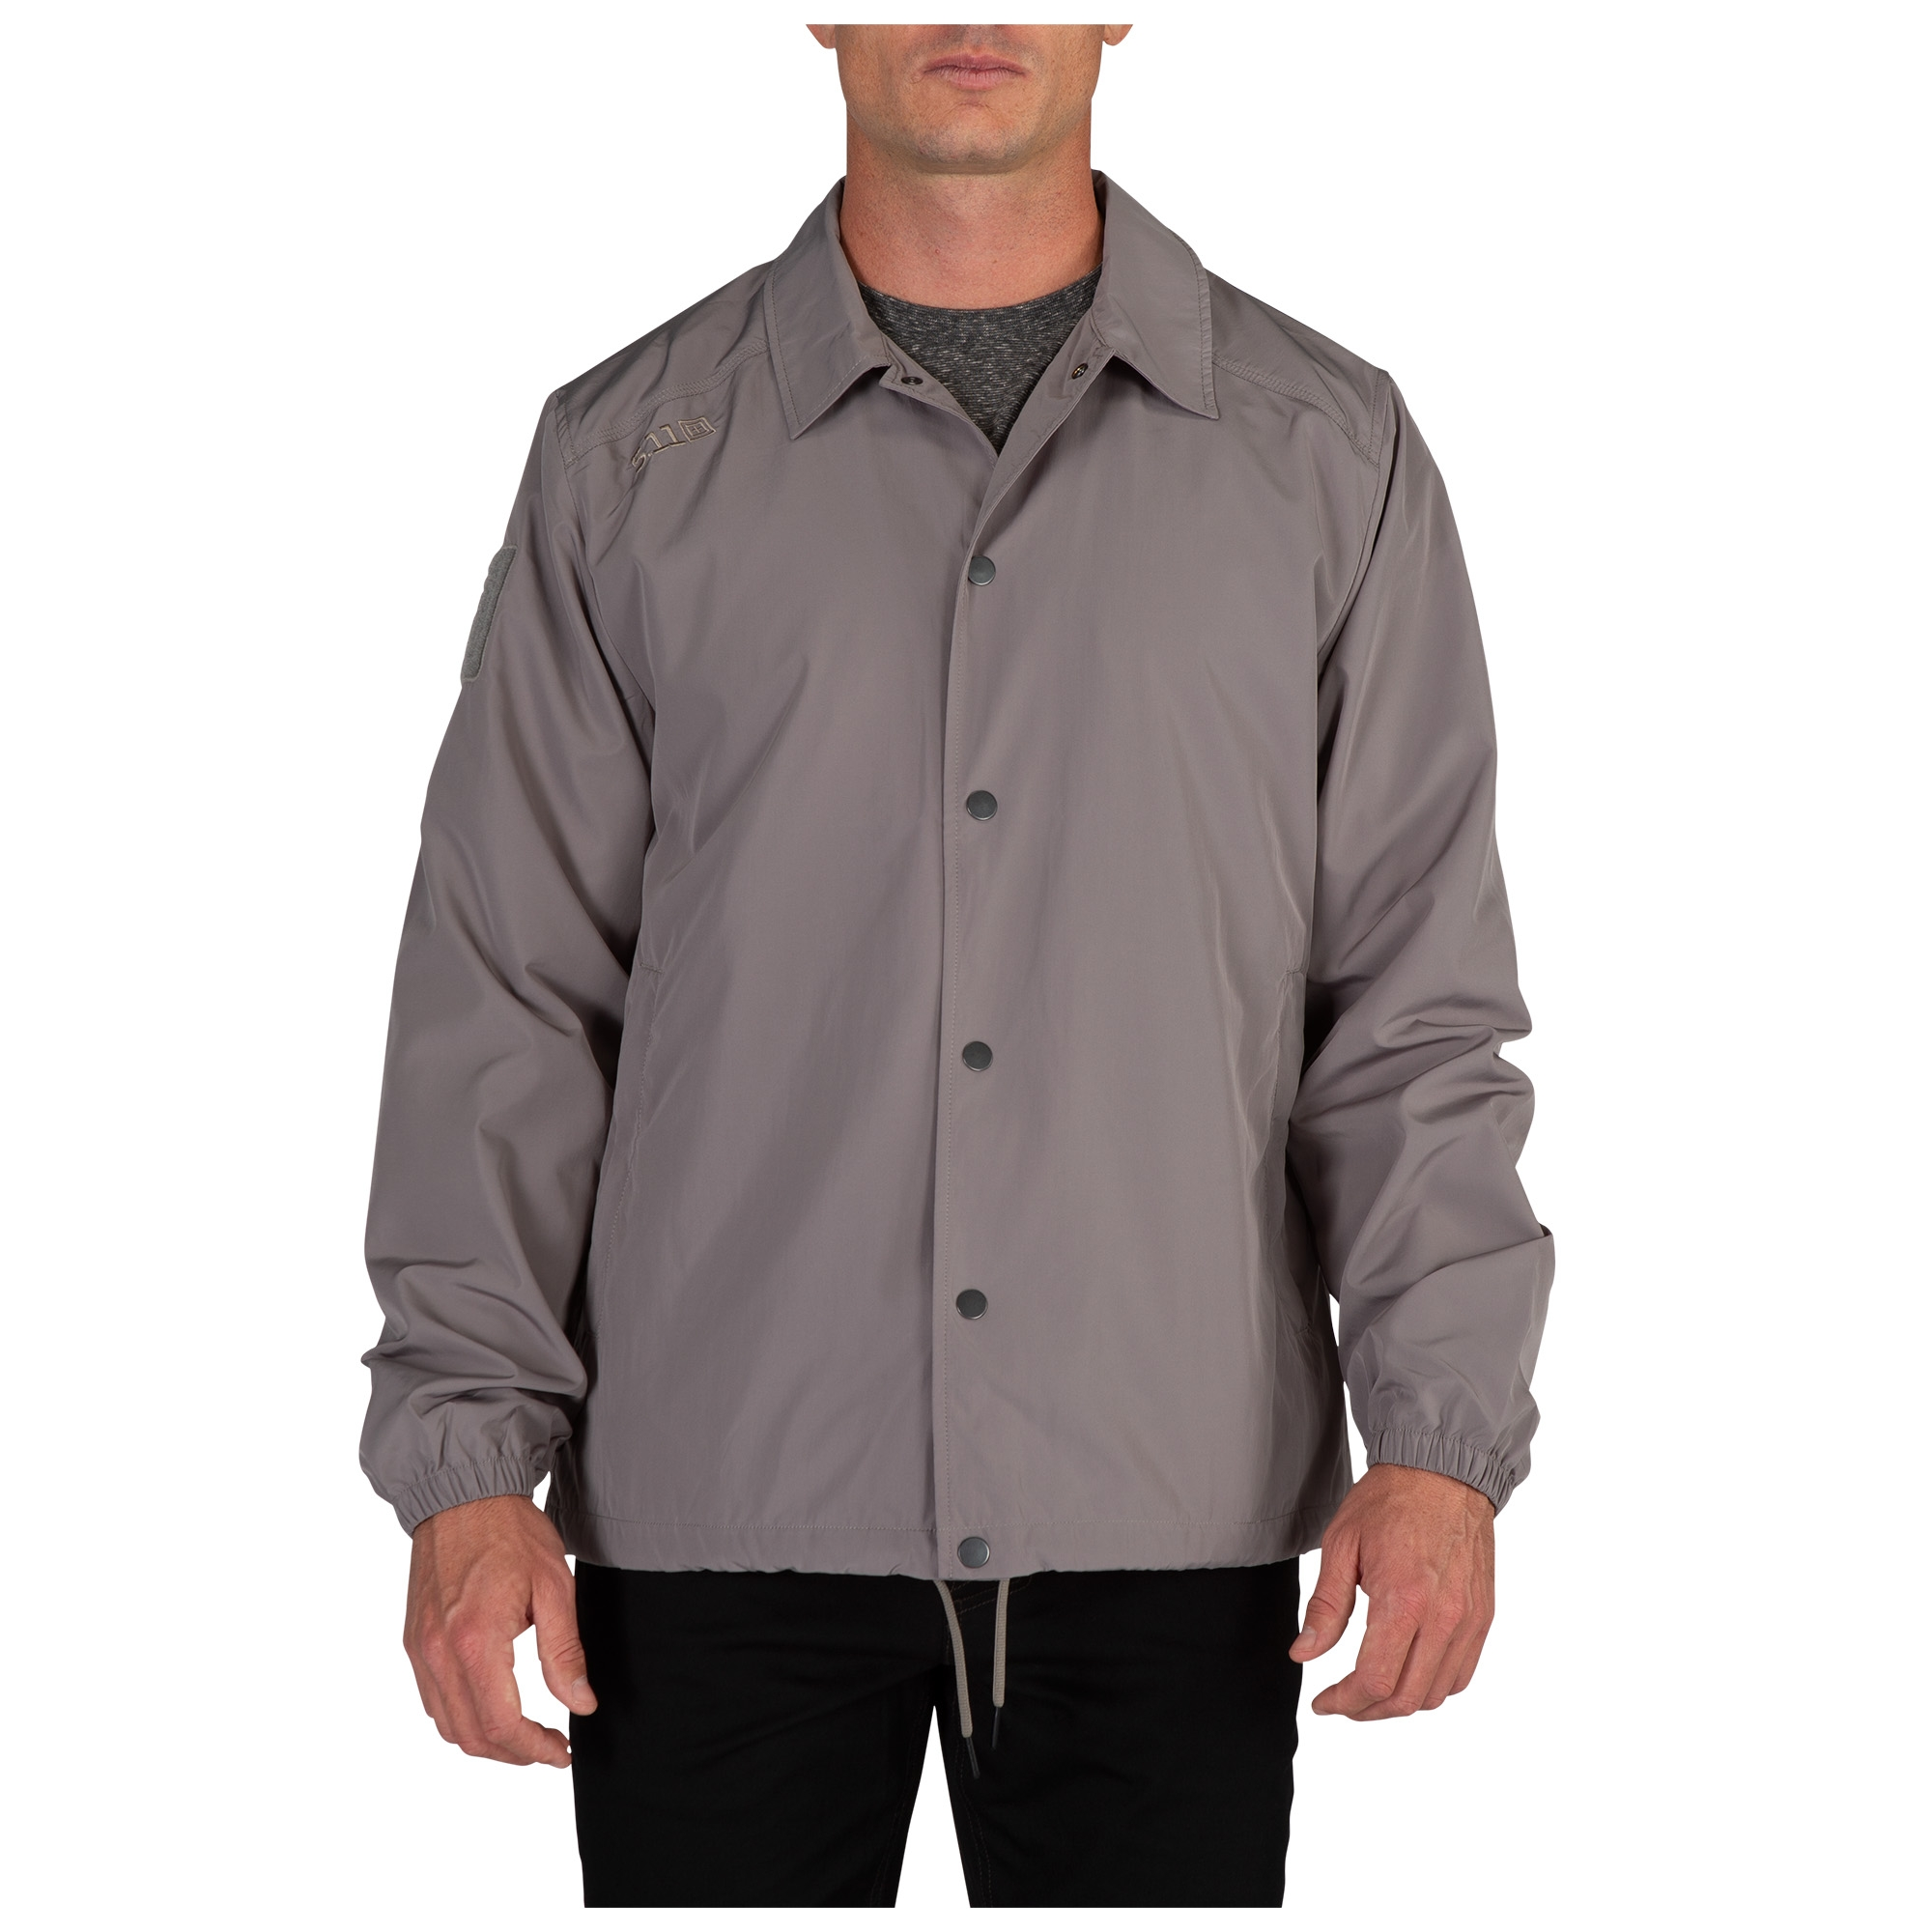 5.11 Tactical Men's Raghorn Coaches Jacket (Grey)